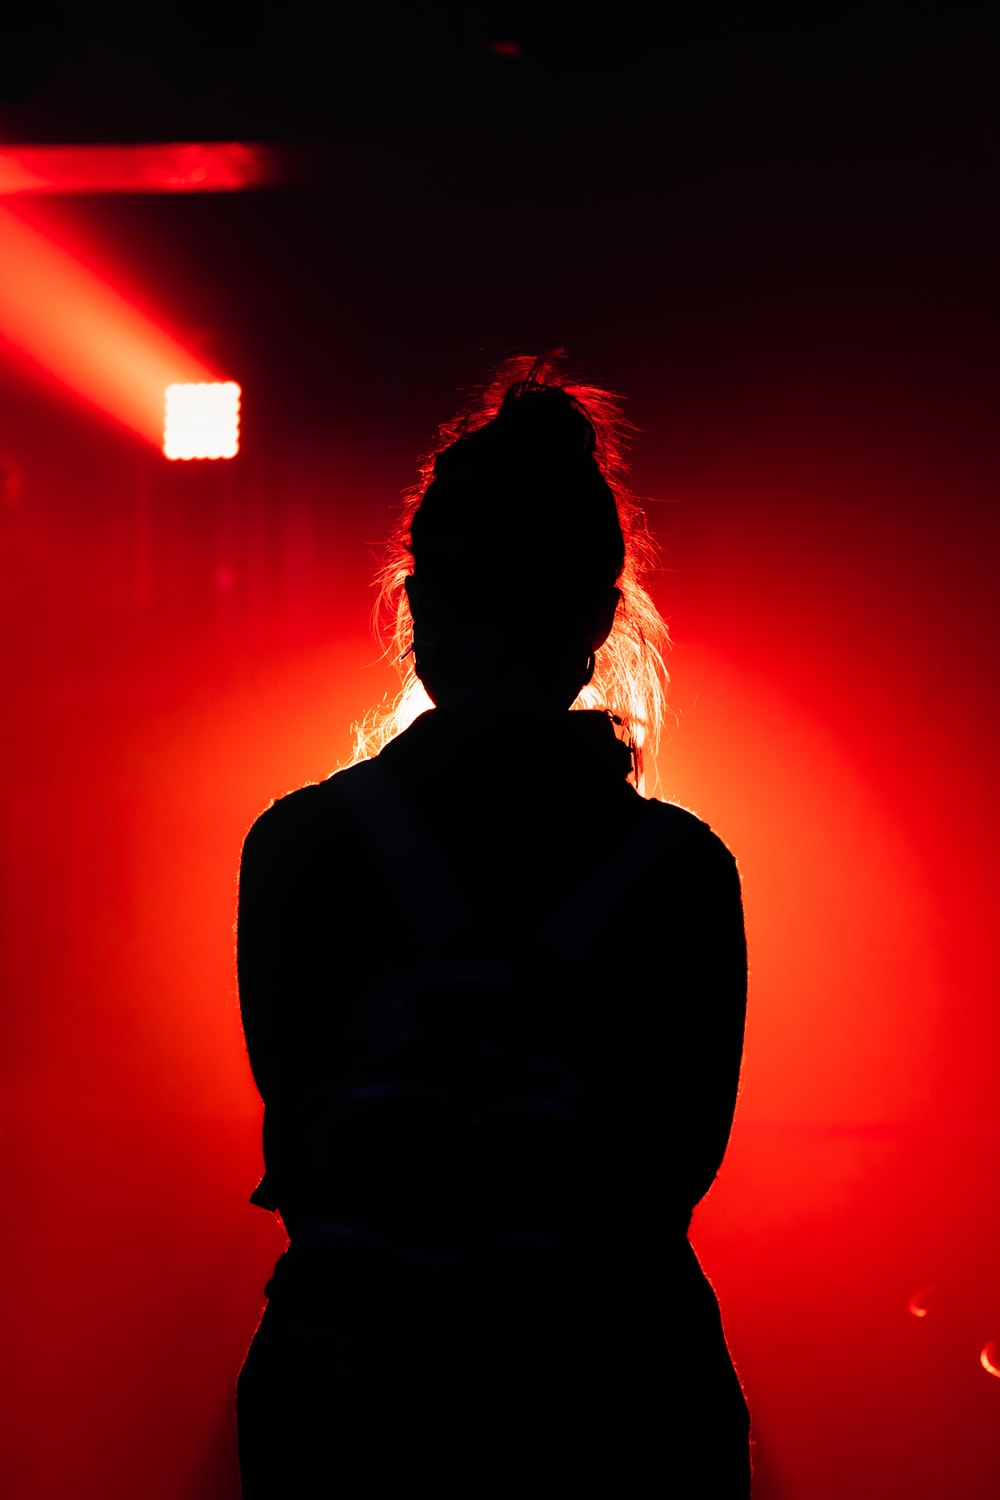 silhouette of person with red light